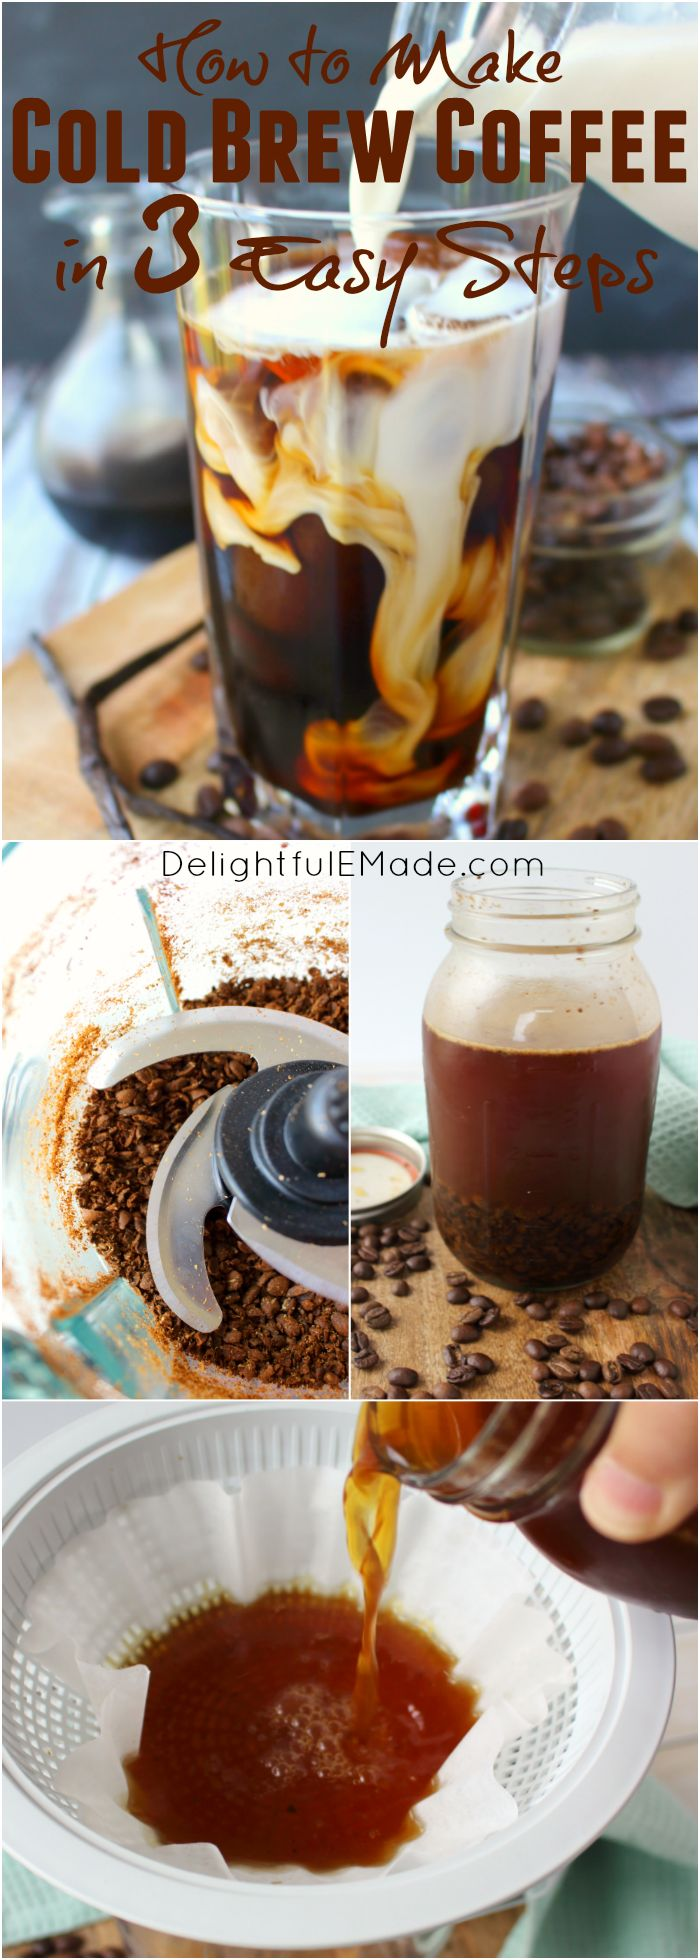 Ever wondered how to make cold brew coffee? It's much easier than you think! Cold Brew Coffee is a fantastic base for frappuccinos, iced coffee recipes, or great to heat up as a traditional brew. Smooth, not bitter, and a must-know for every coffee lover!